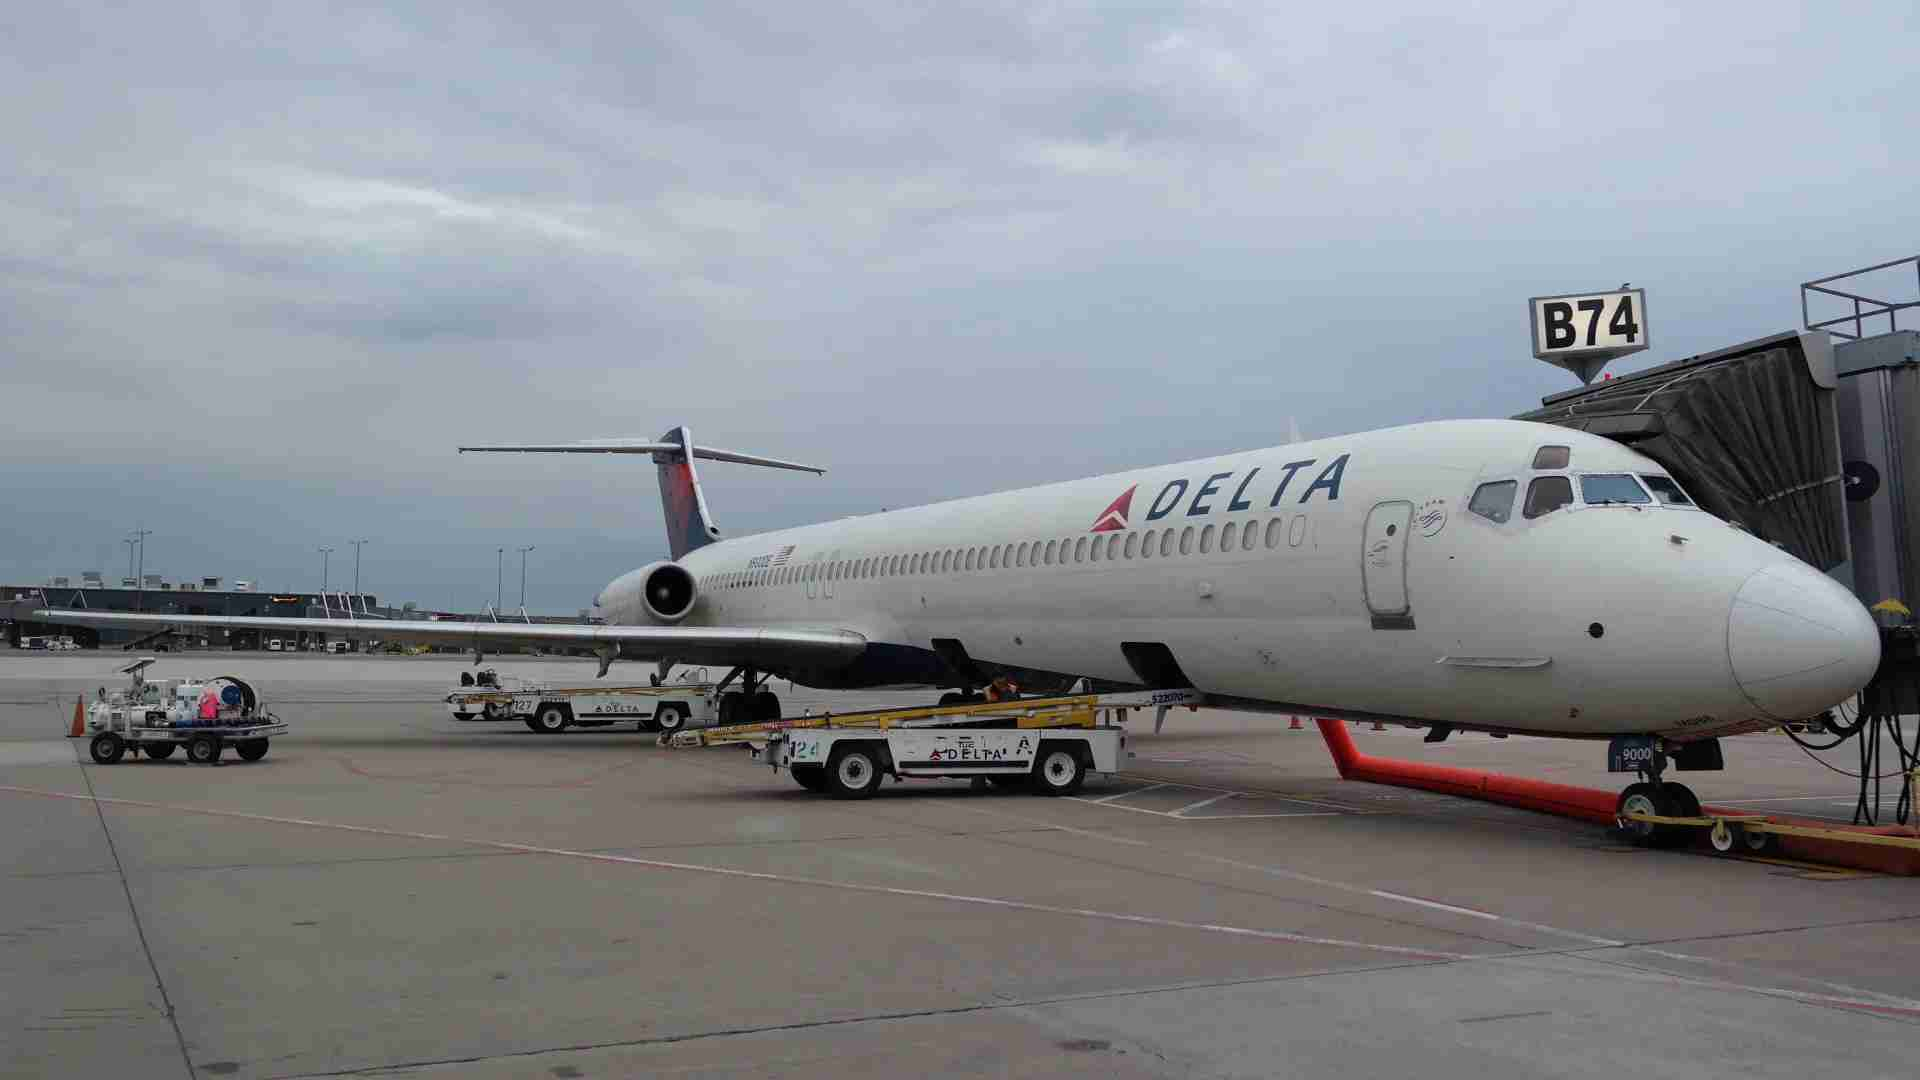 Delta retired its MD-88 fleet on June 2, 2020, with the final scheduled passenger departure from Washington Dulles airport. (Image by Edward Russell/TPG)